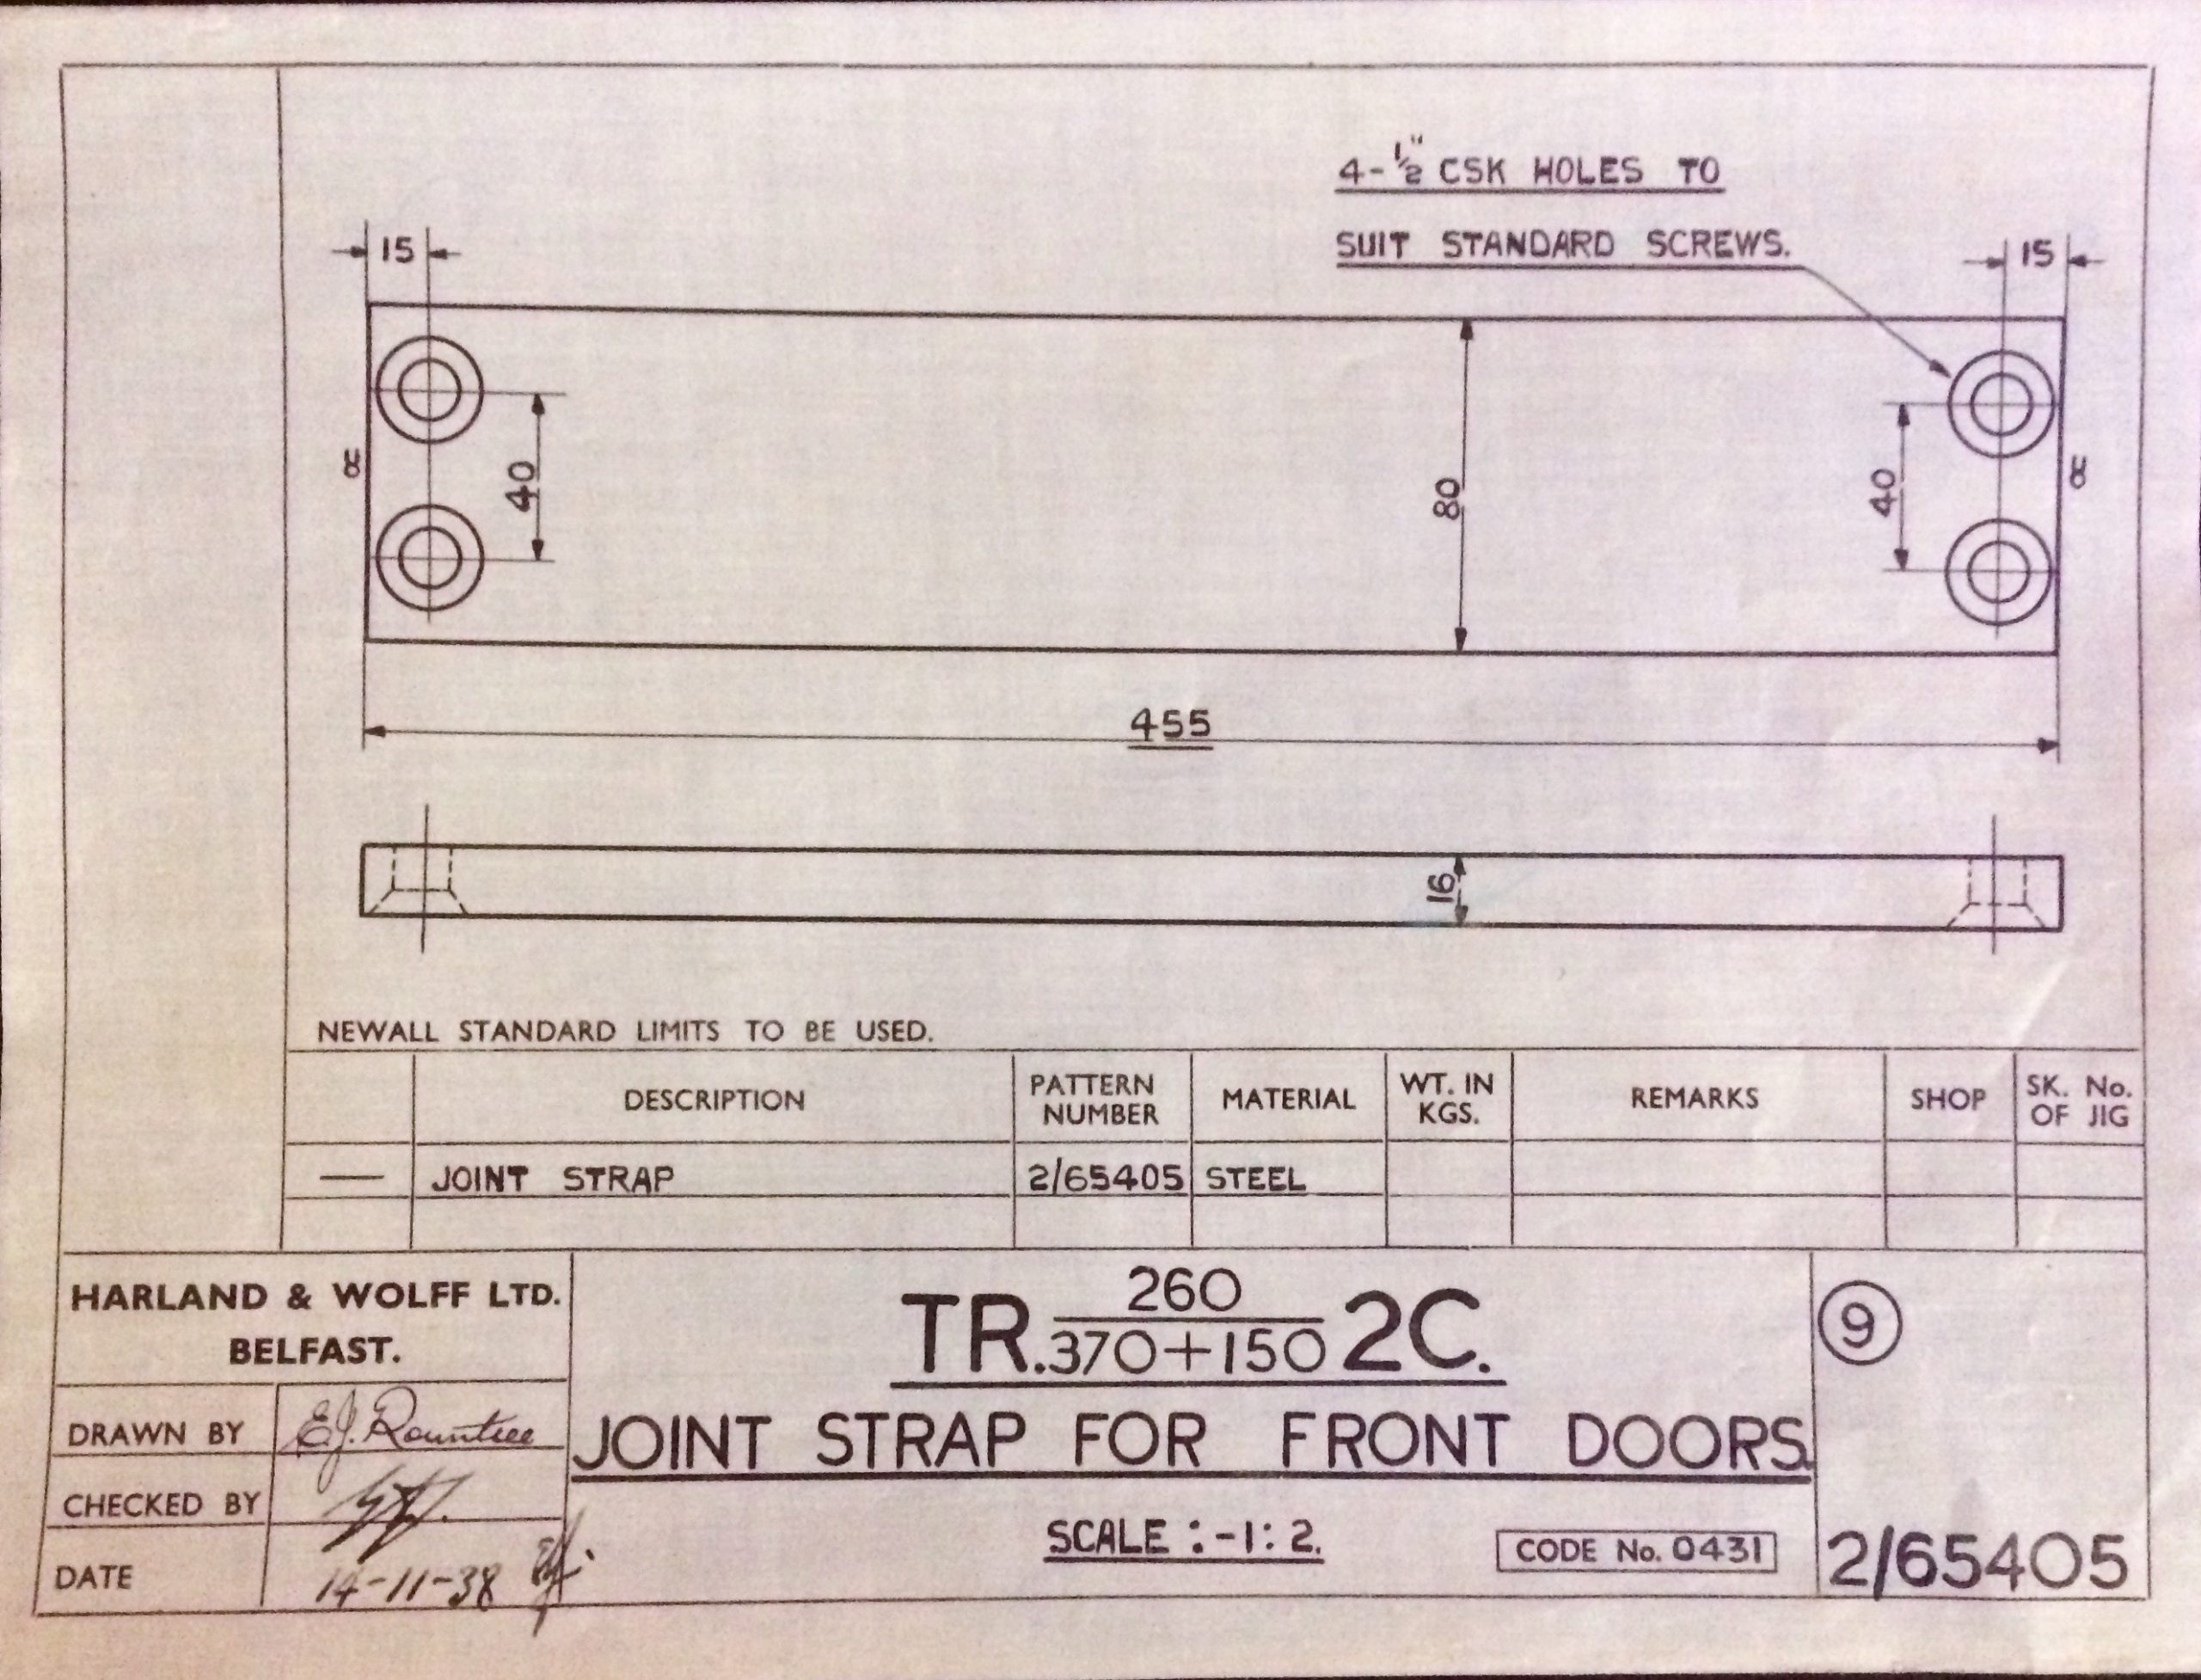 Harland & Wolff Engineering Drawing 30/2/65405